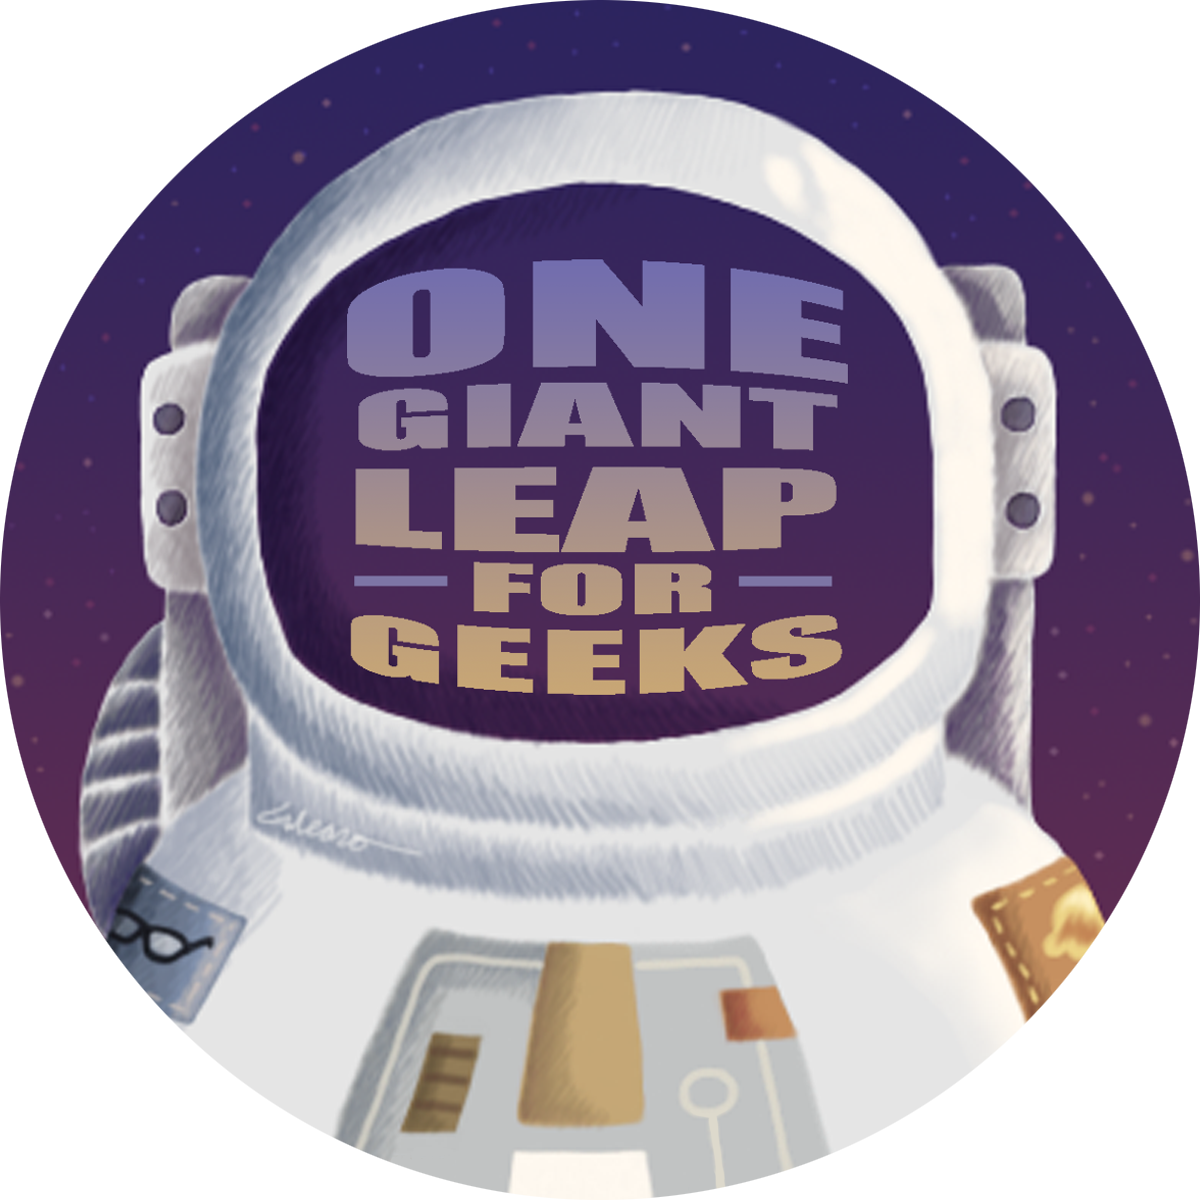 One Giant Leap for Geeks